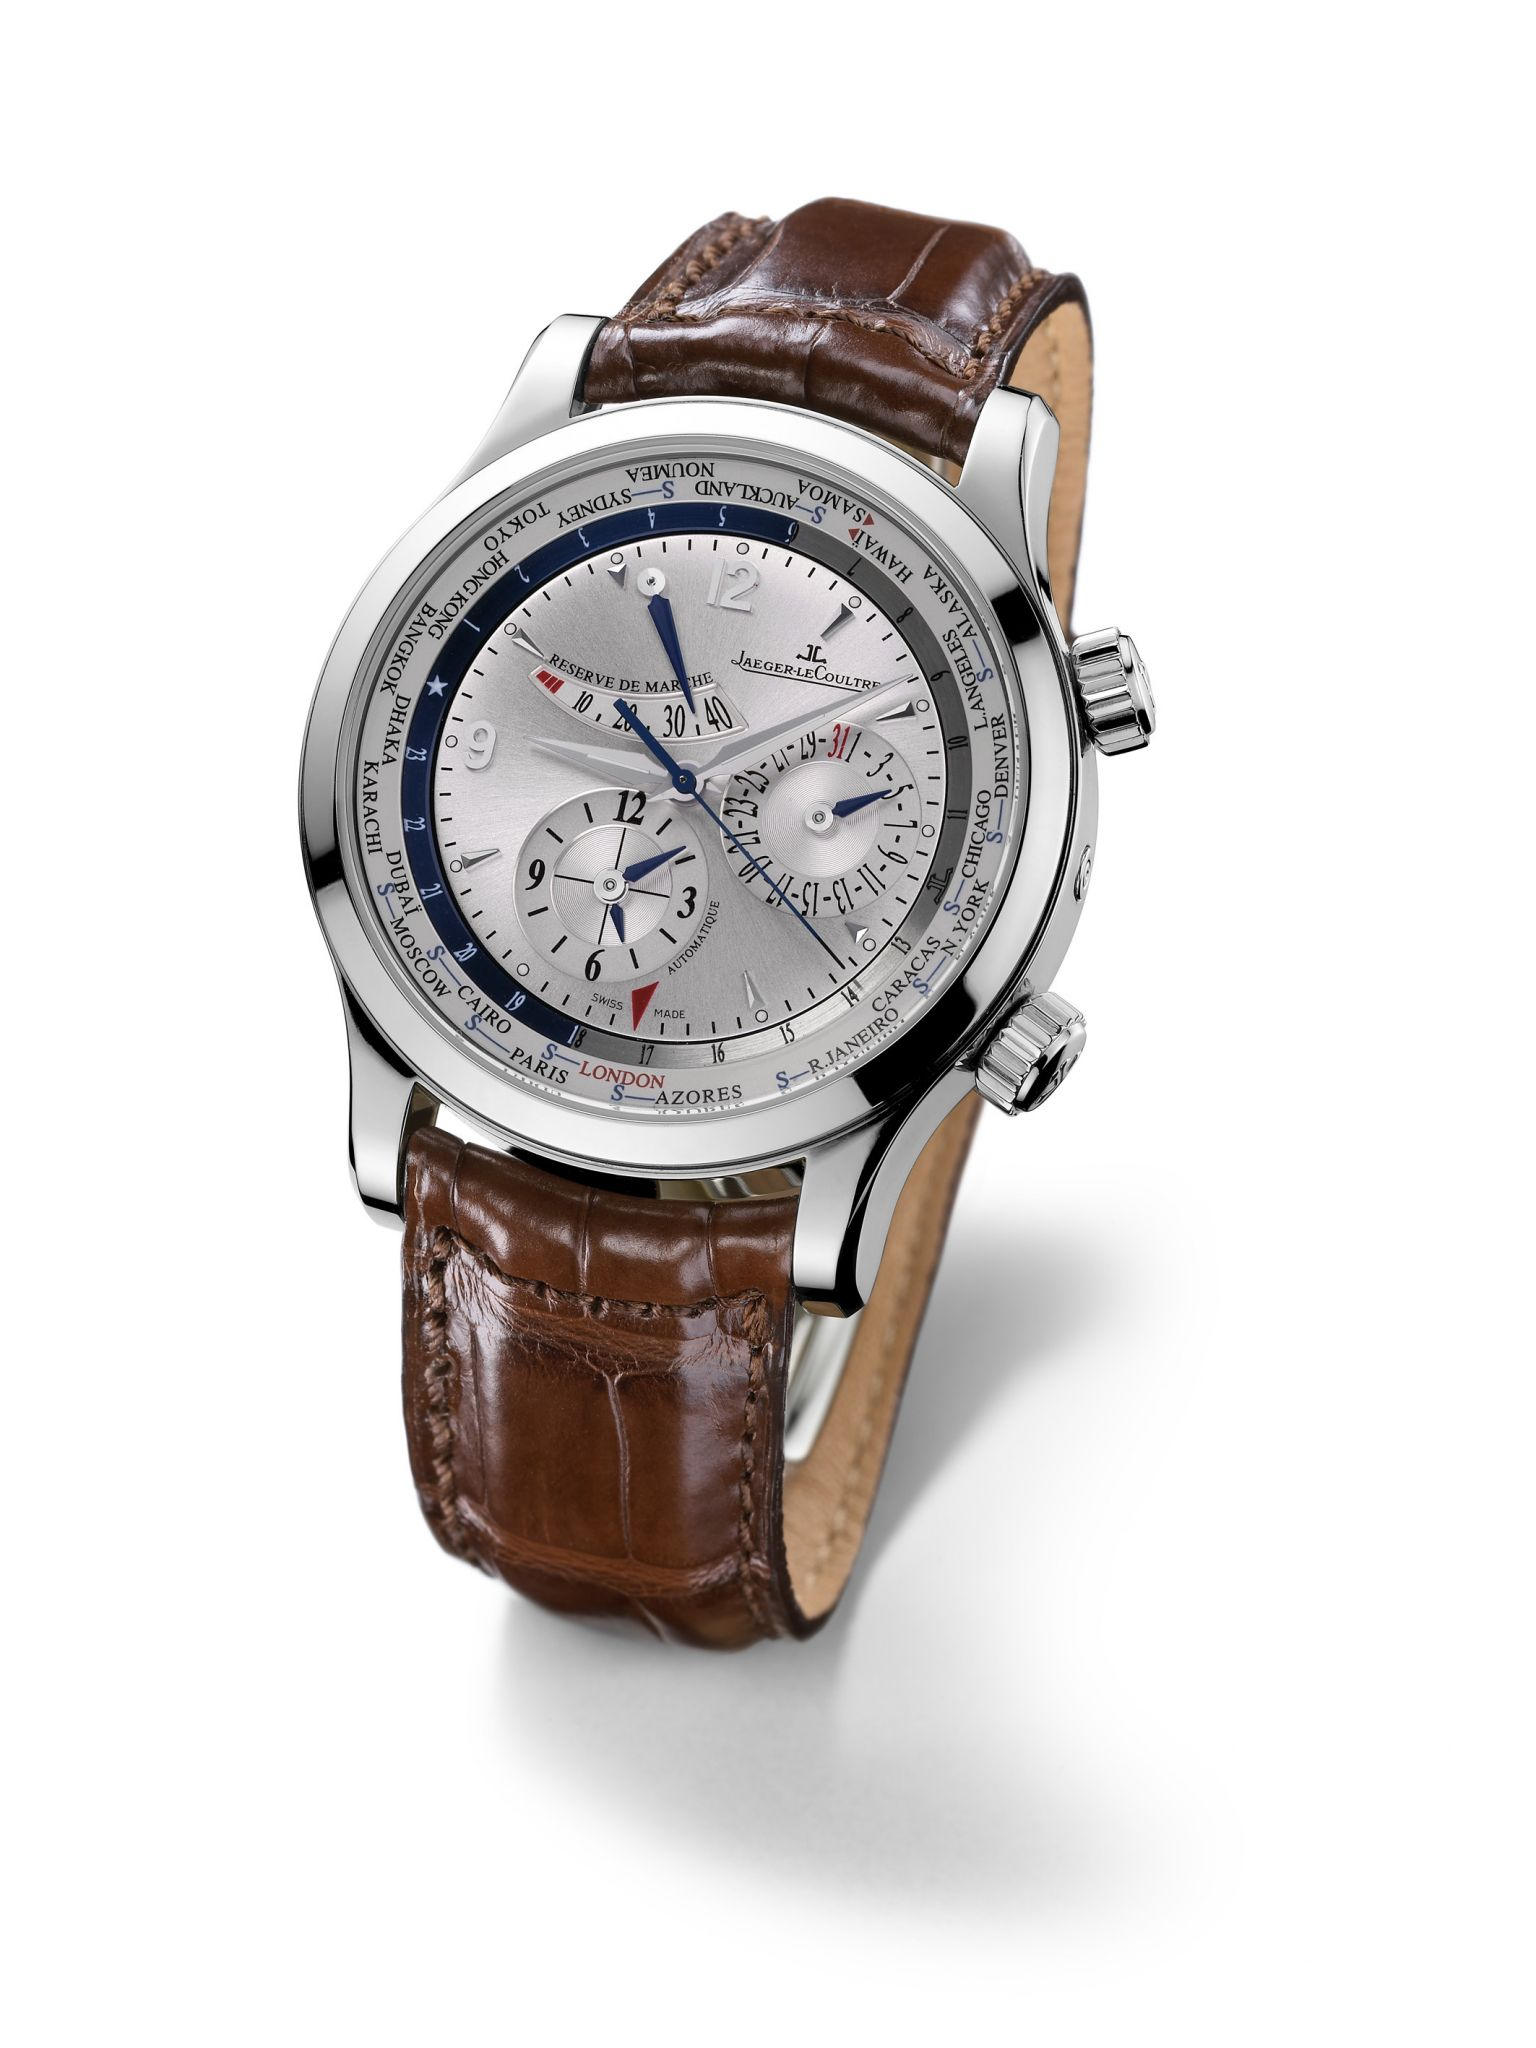 The Jaeger-LeCoultre Master World Geographic Mens Watch Chronograph